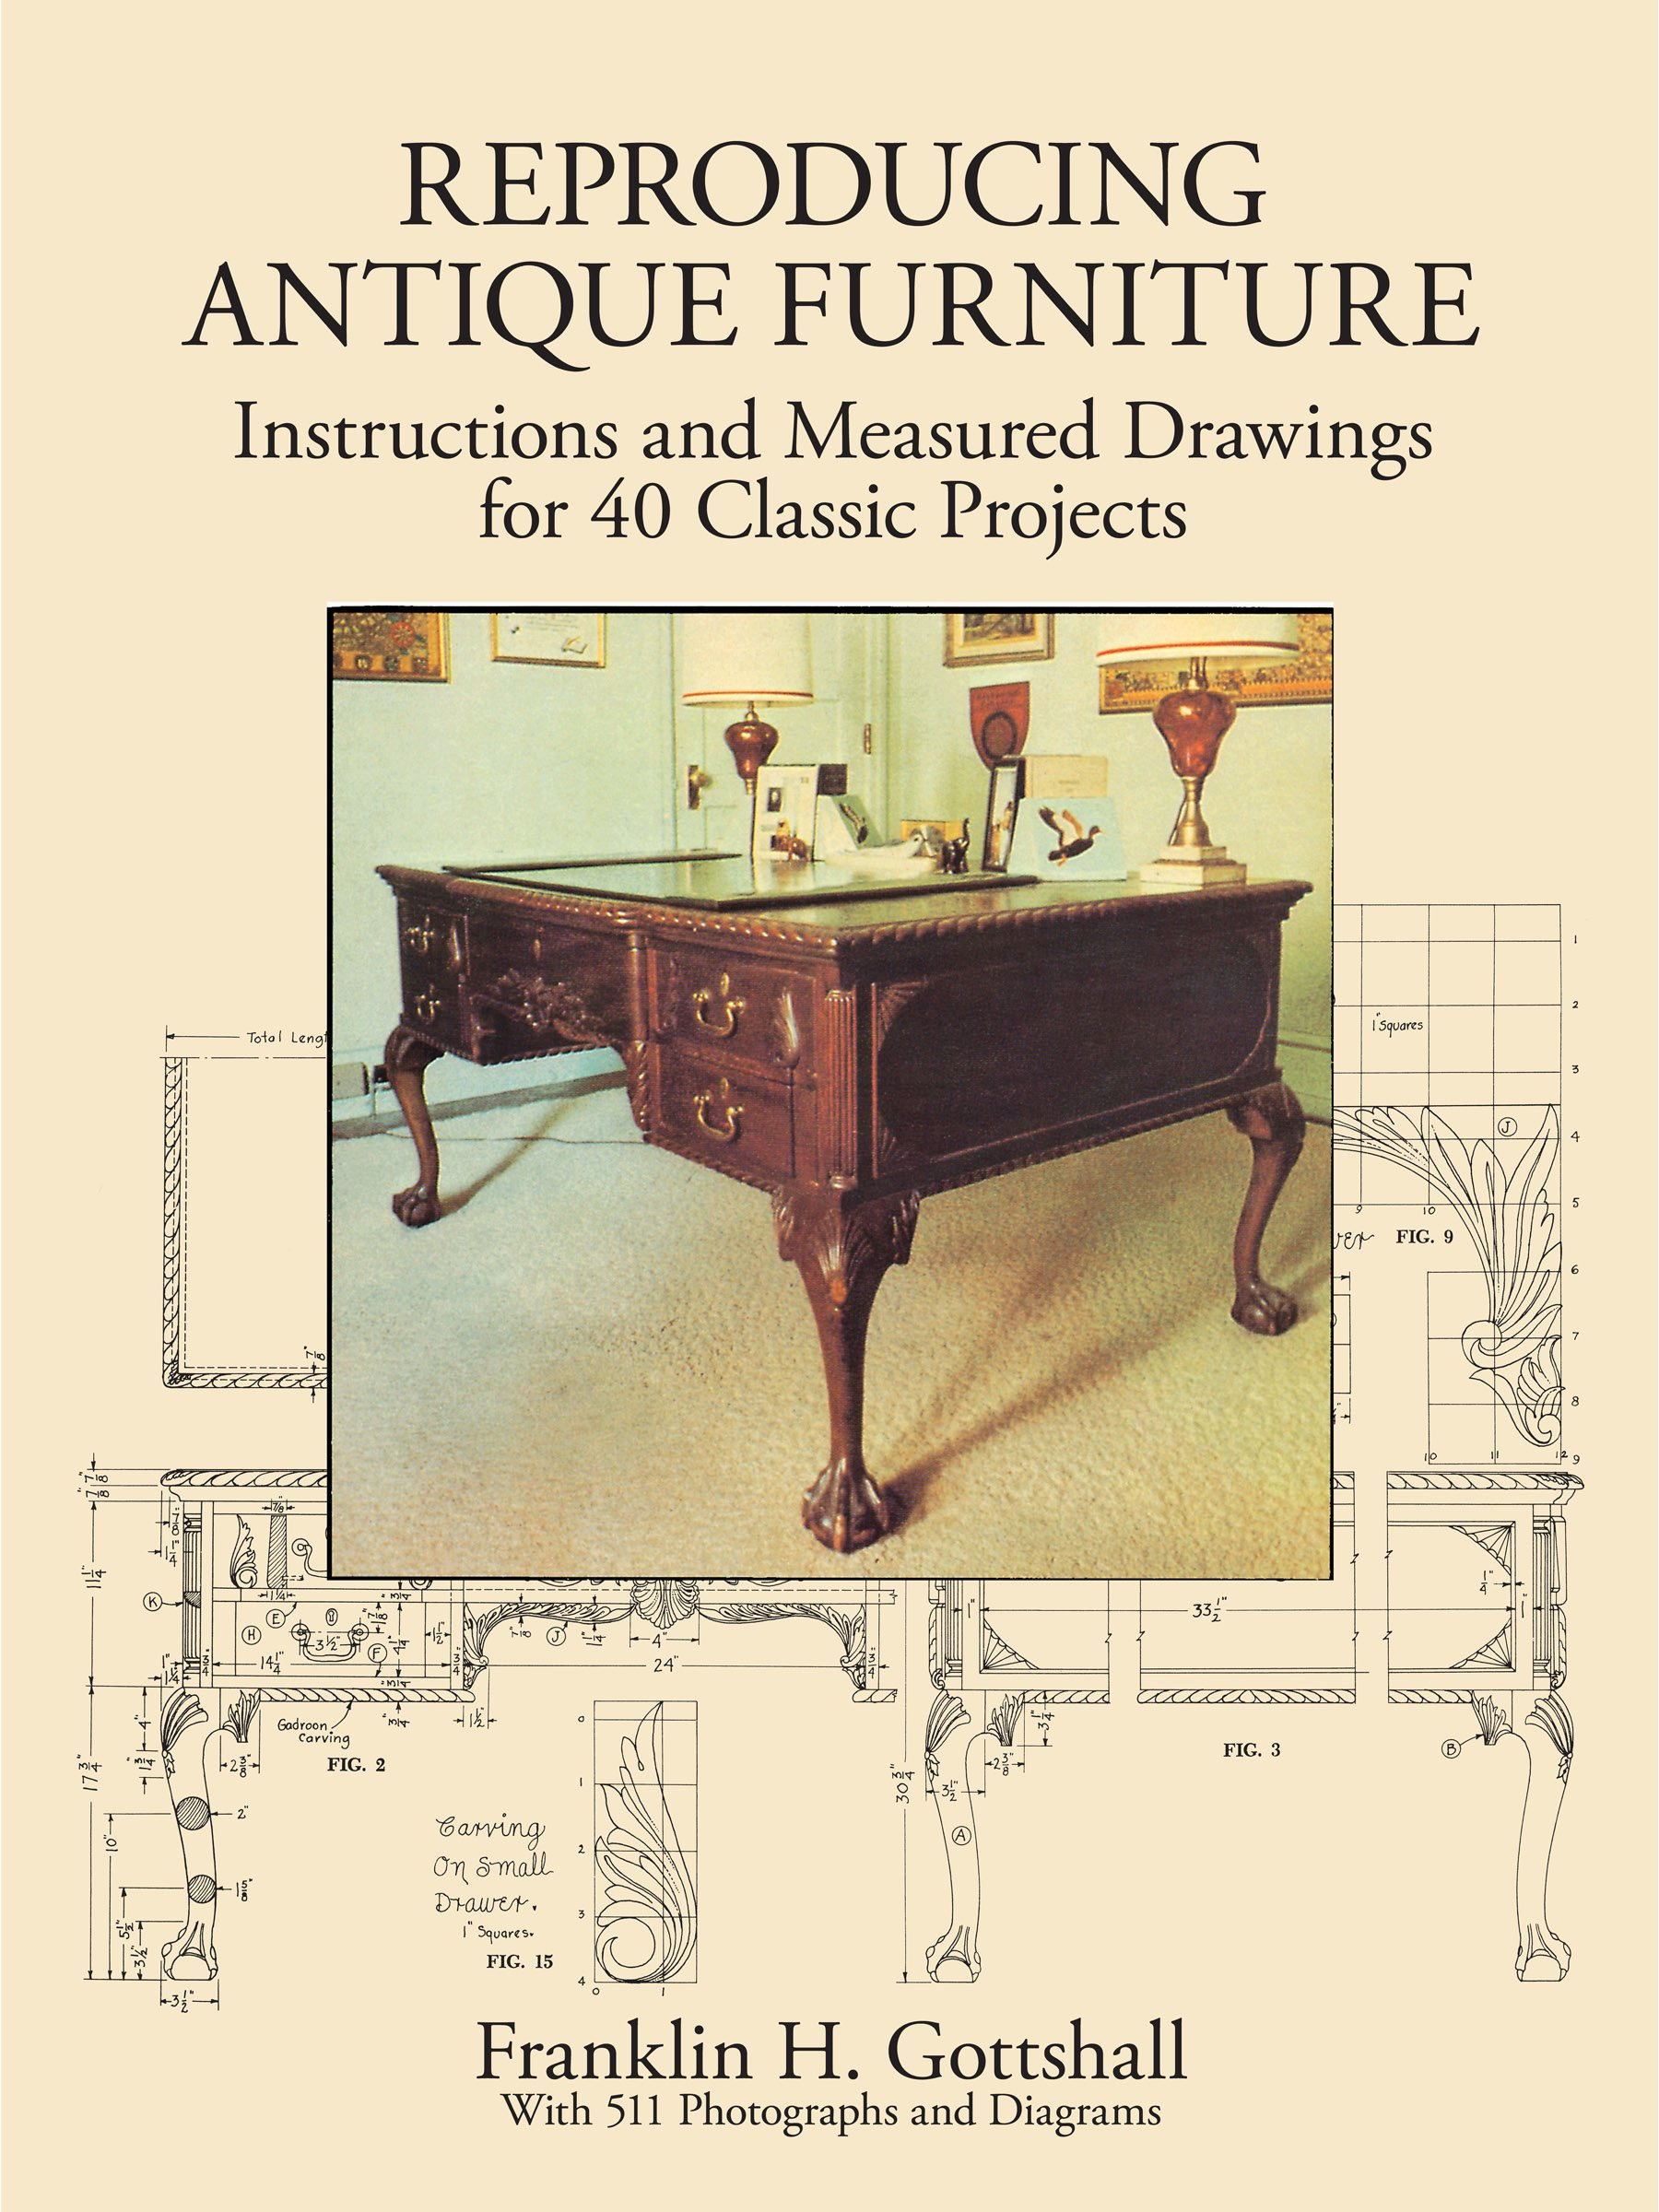 Antique Reproduction Furniture Kits Inspirational Reproducing Antique Furniture Instructions and Measured